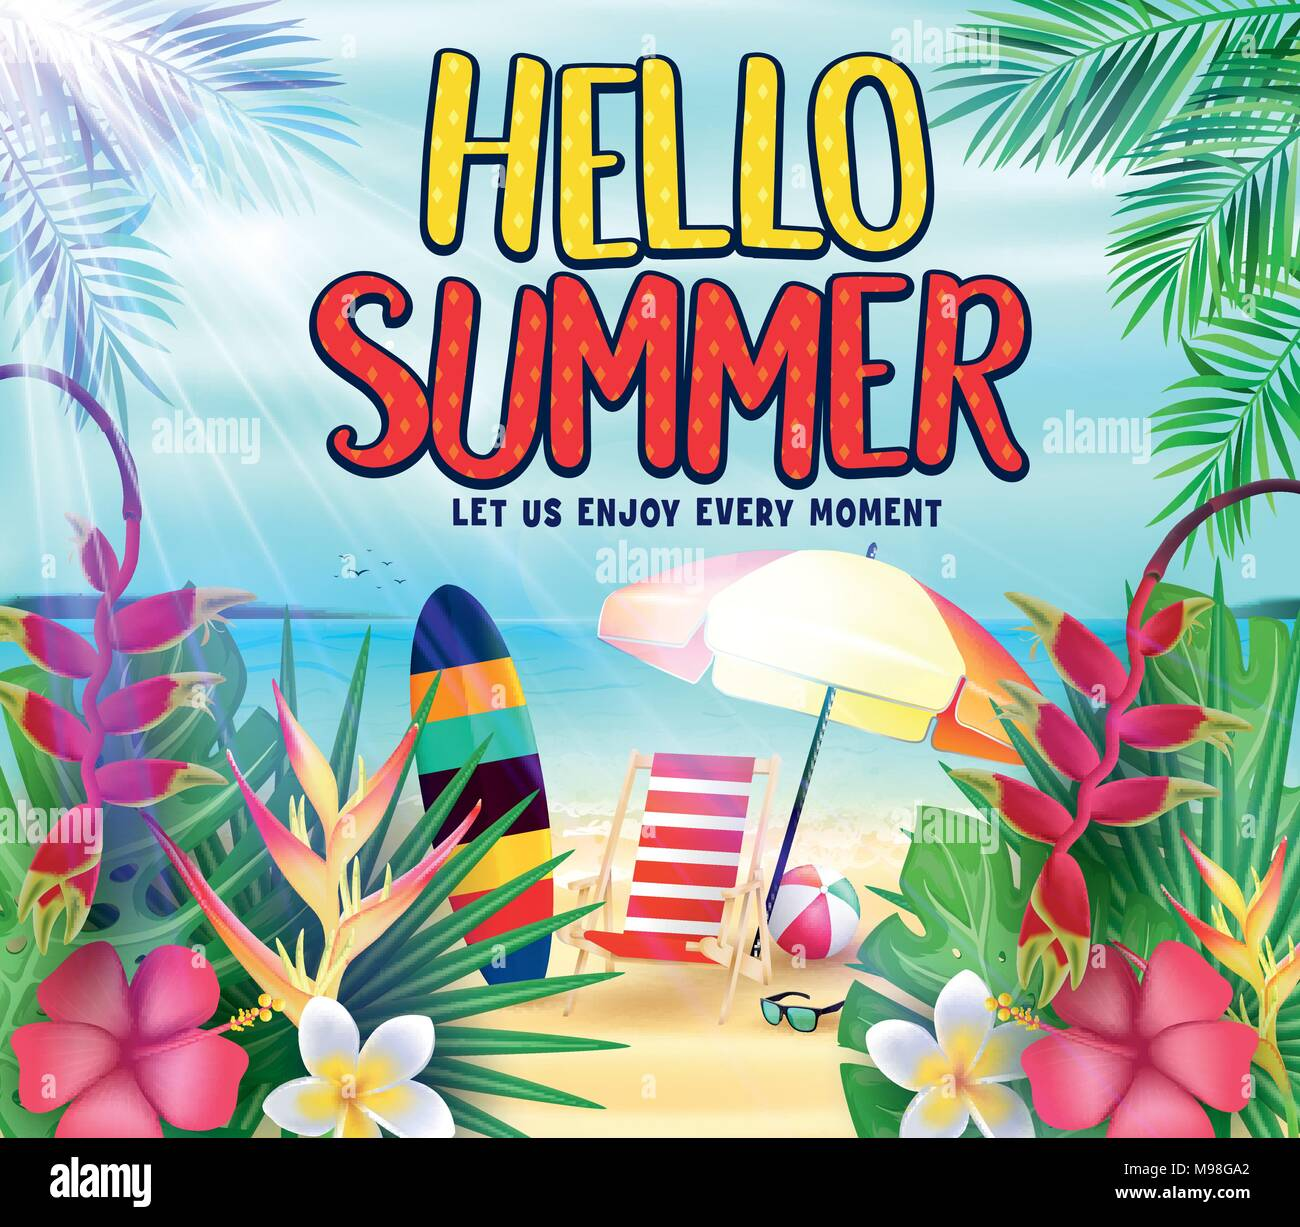 Hello Summer at the Seashore Let Us Enjoy Every Moment Poster with Tropical Leaves, Flowers, Surfboard, Beach Ball, Bench and Umbrella in Beach Stock Vector